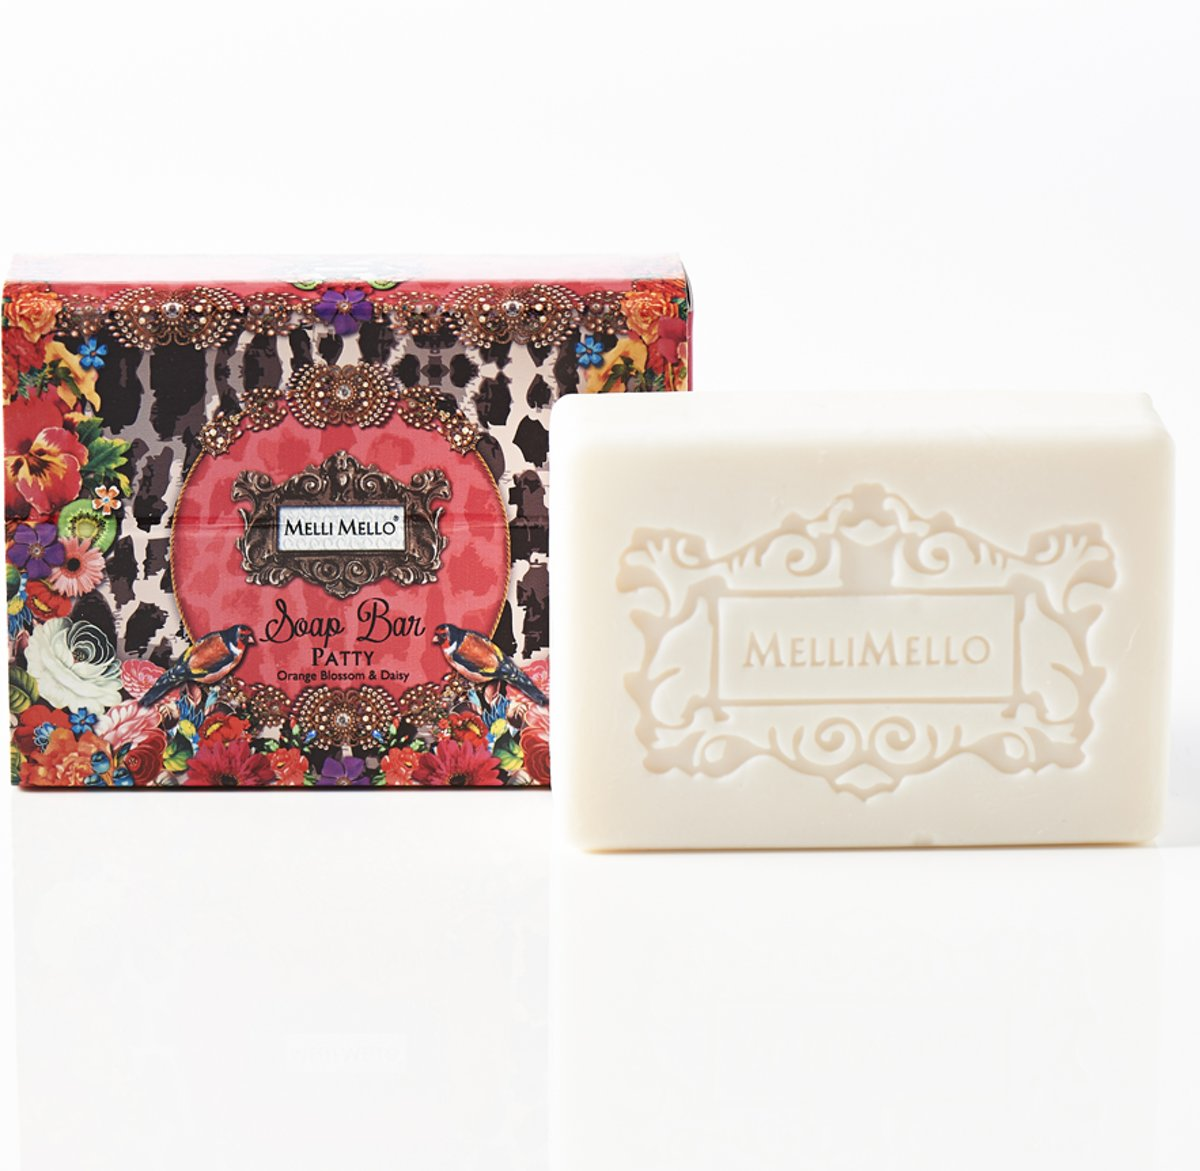 Melli Mello Soap Bar Patty